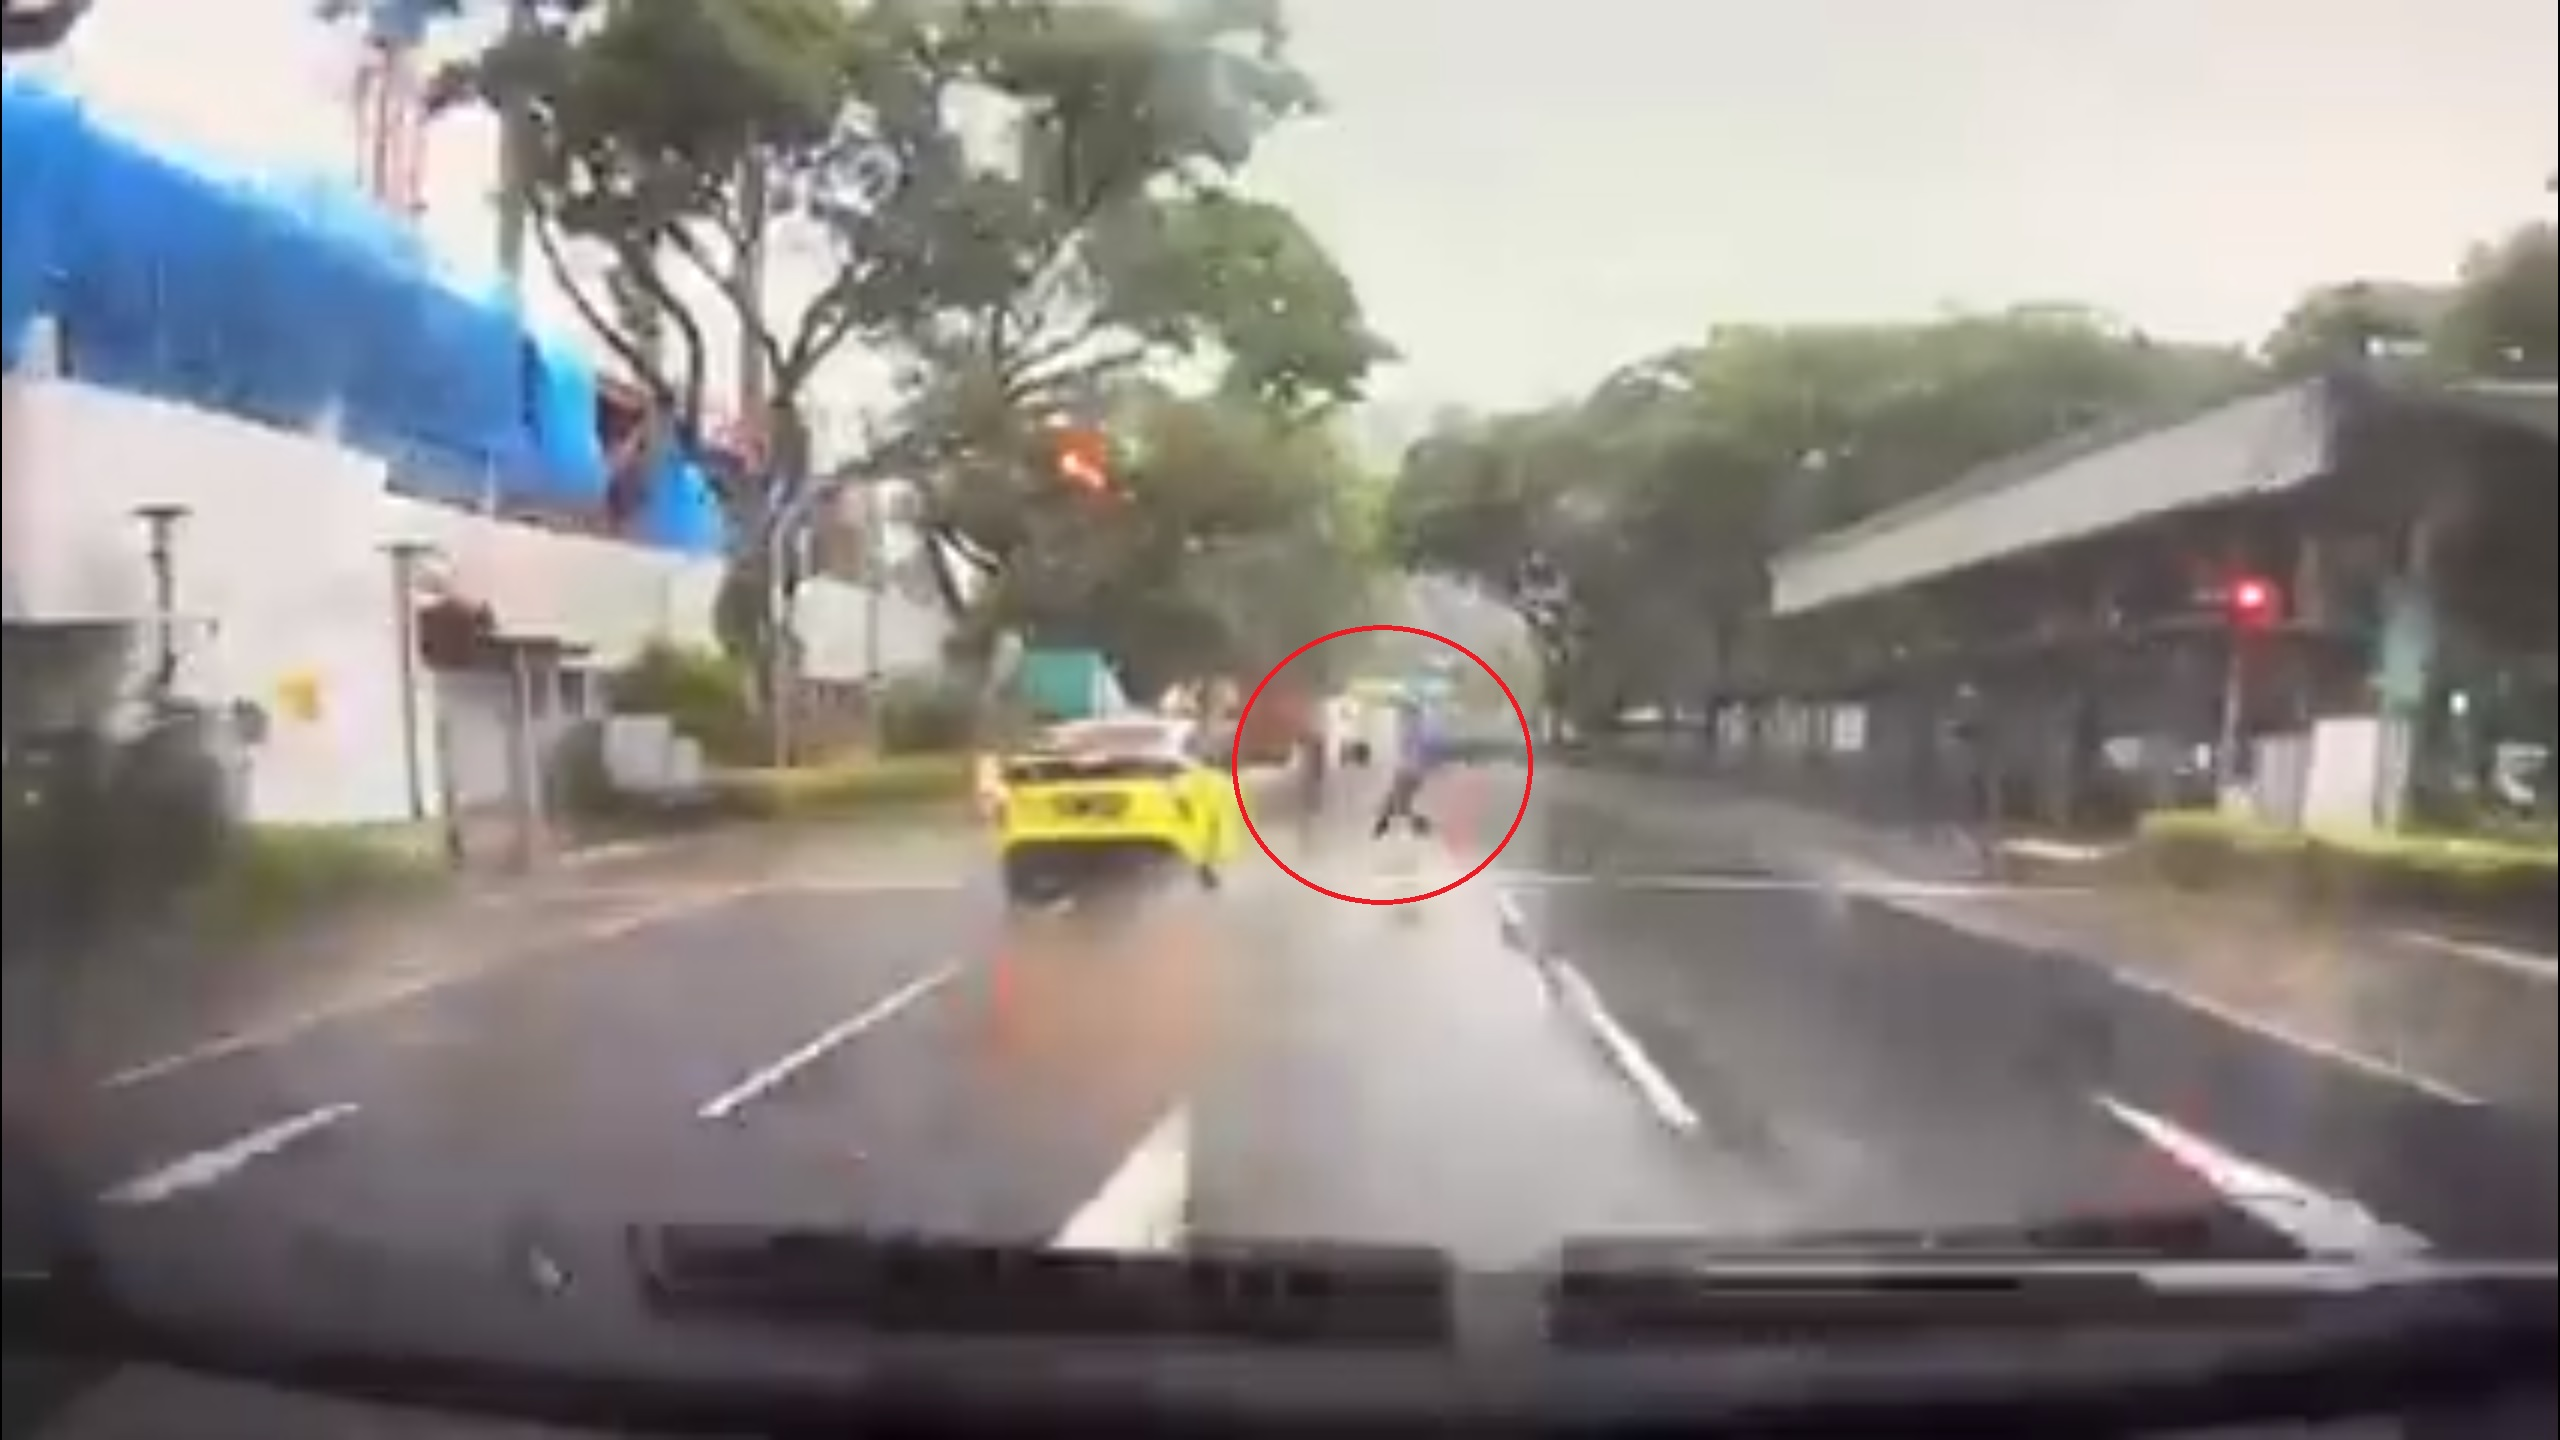 Taxi Beats Red Light & Knocks Down a Pedestrian at Penang Road